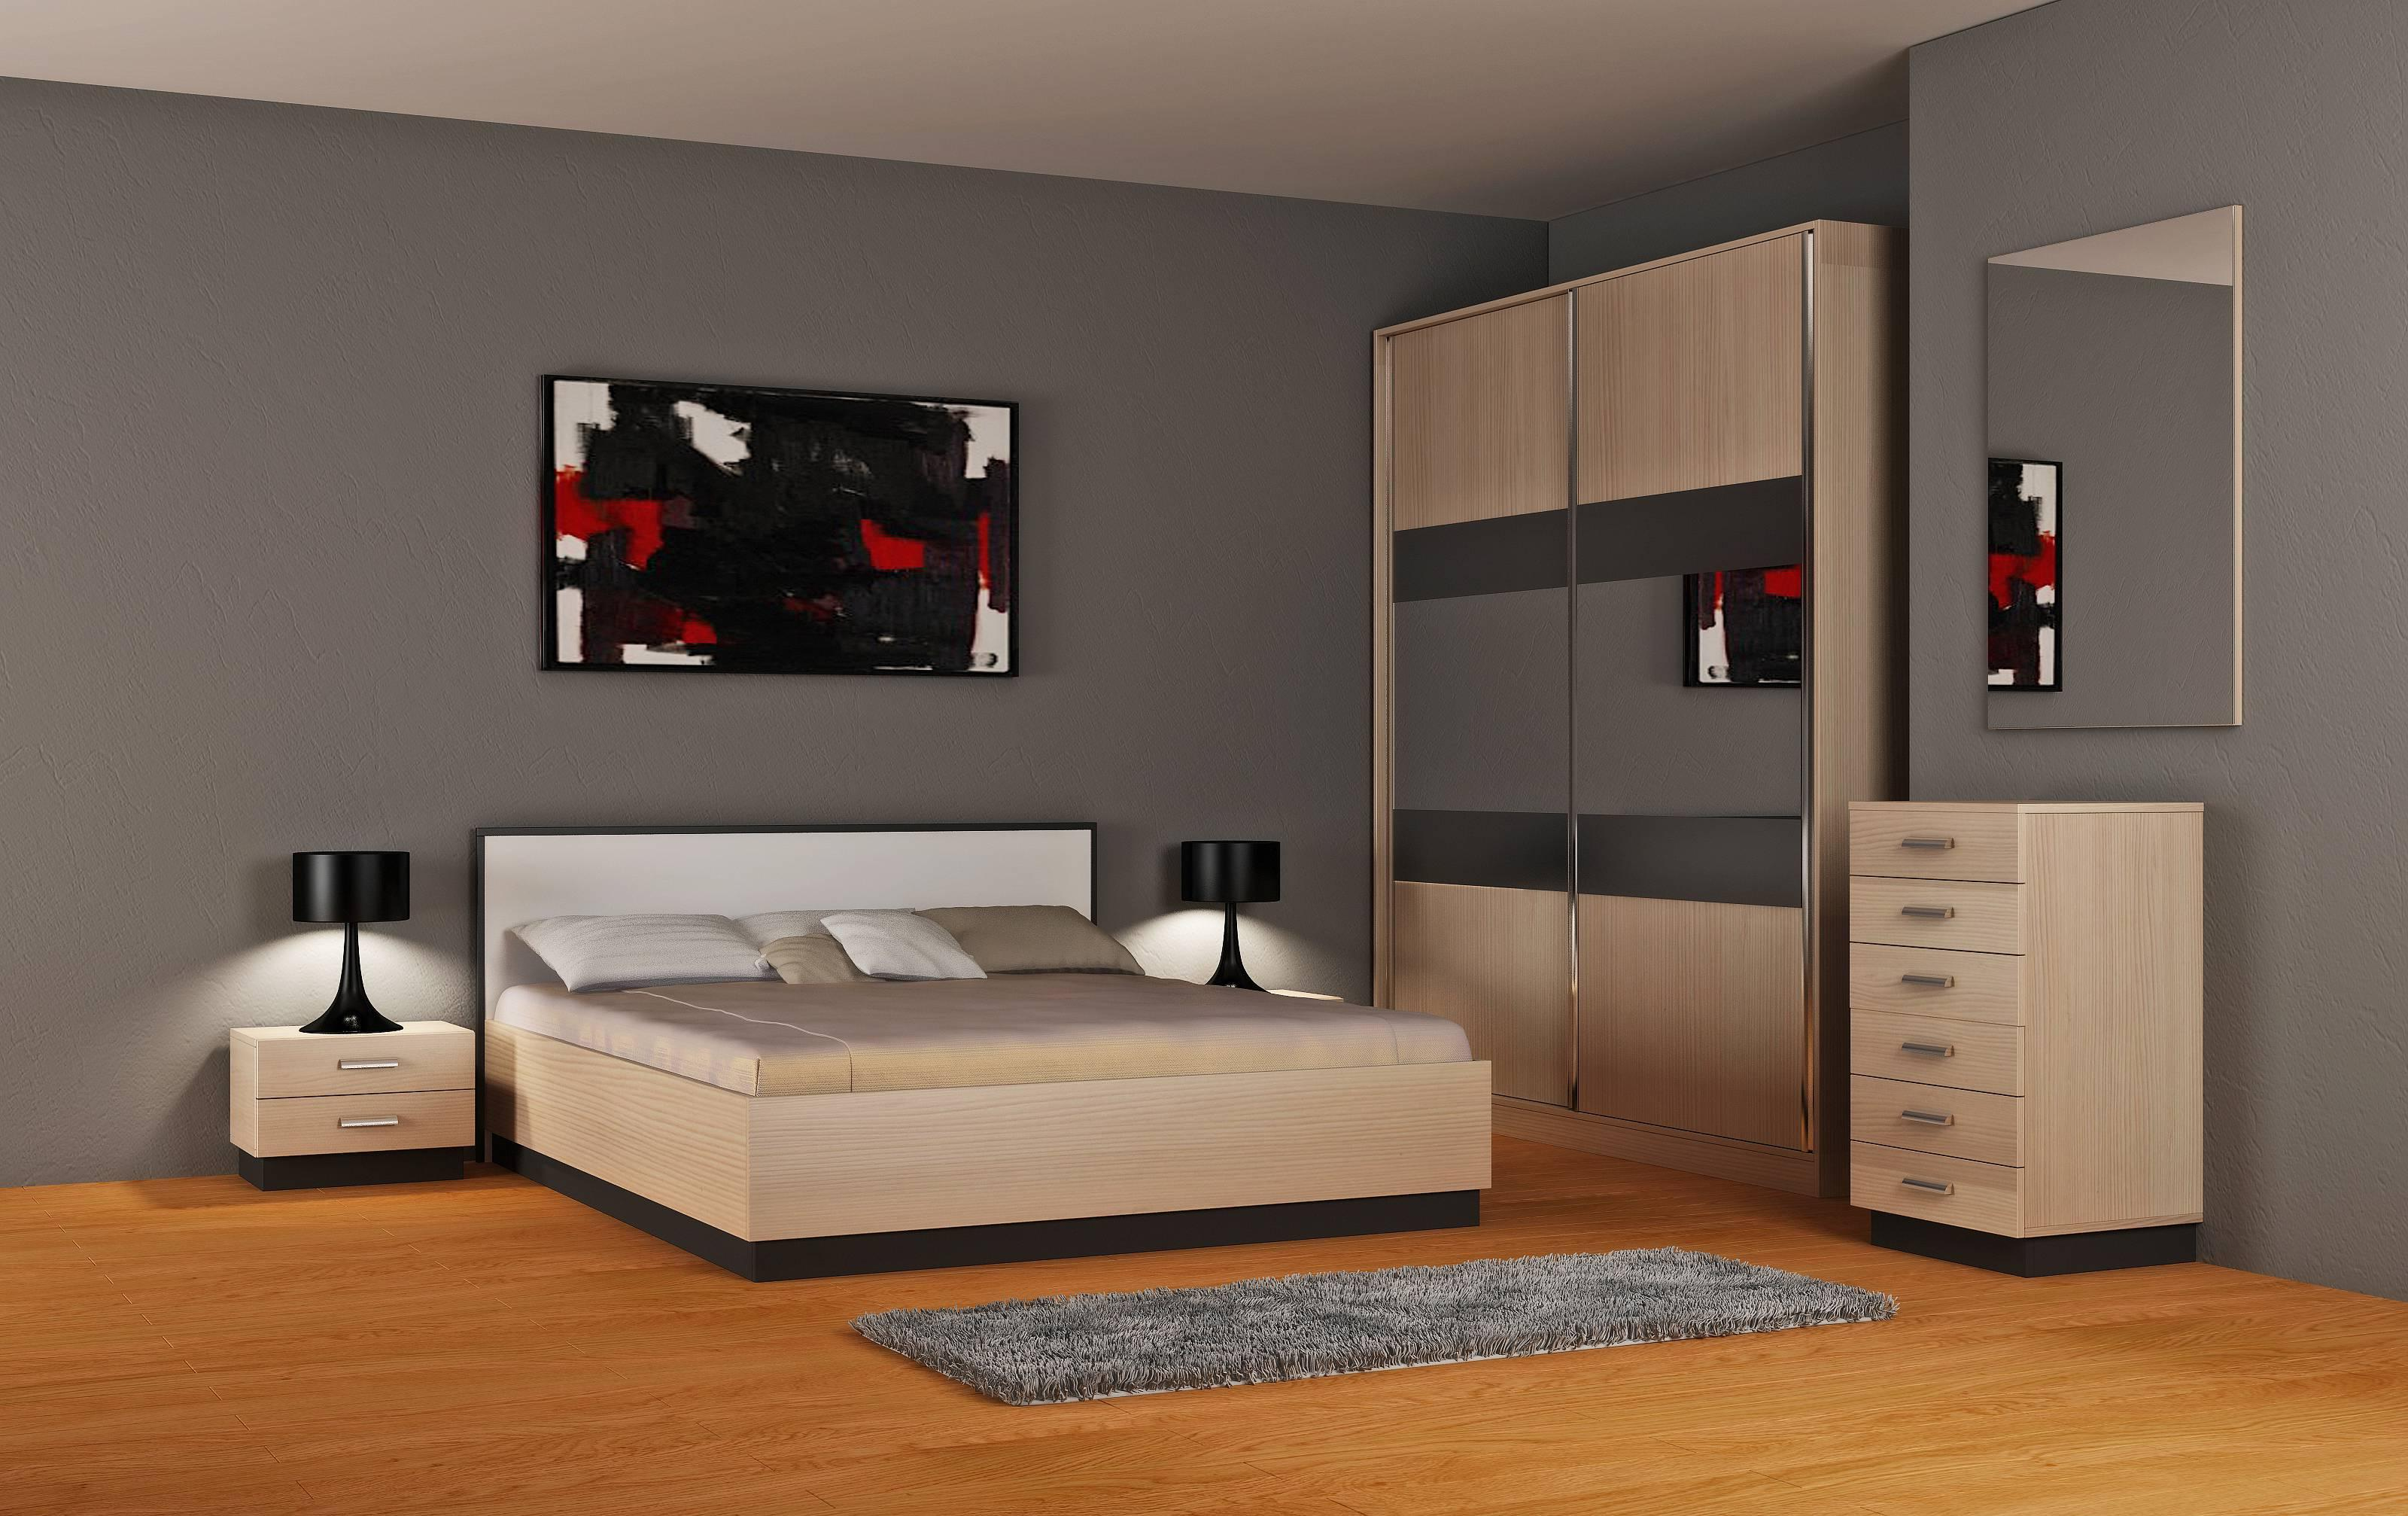 Bedroom Designs With Light Wood Furniture Home Decor